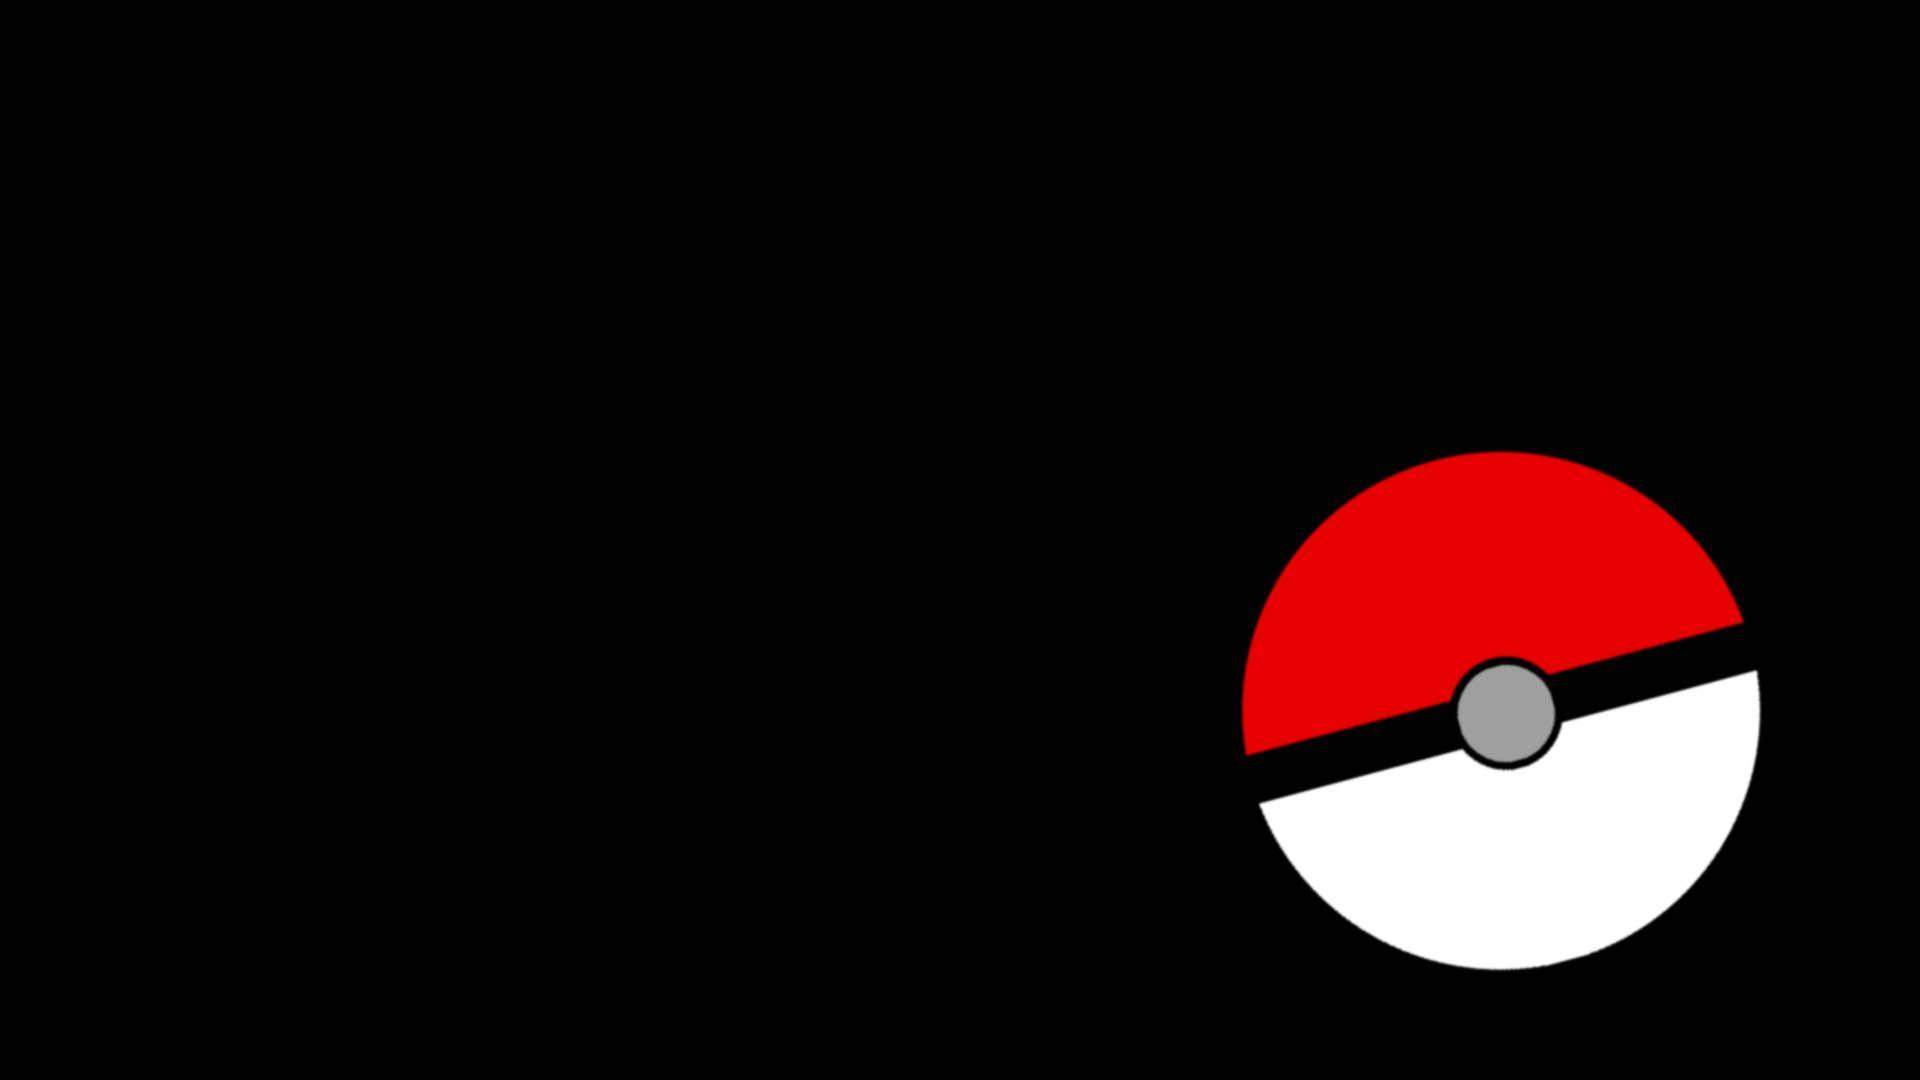 Pokeball Backgrounds - Wallpaper Cave